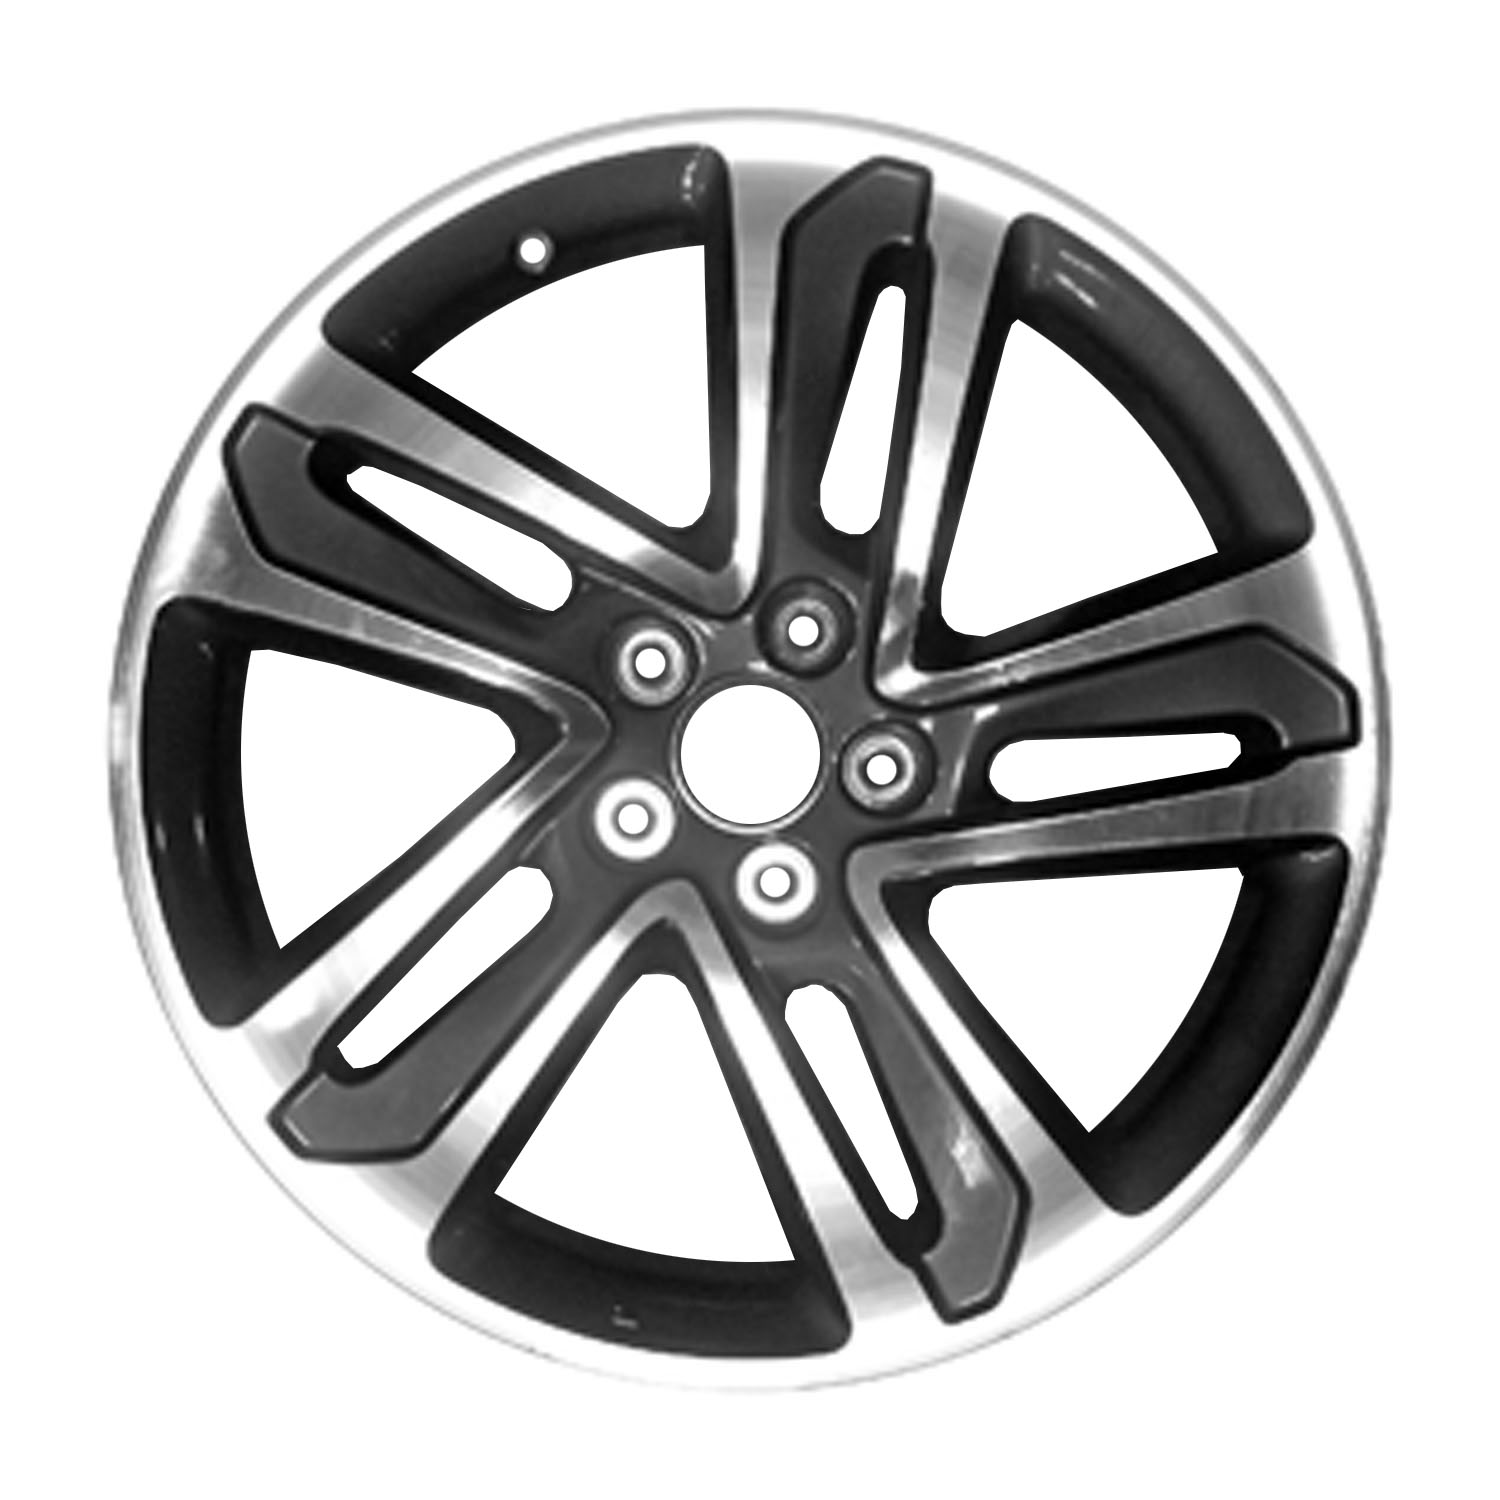 "Reconditioned 20"" Alloy Wheel Fits 2017-2018 Acura MDX 560"